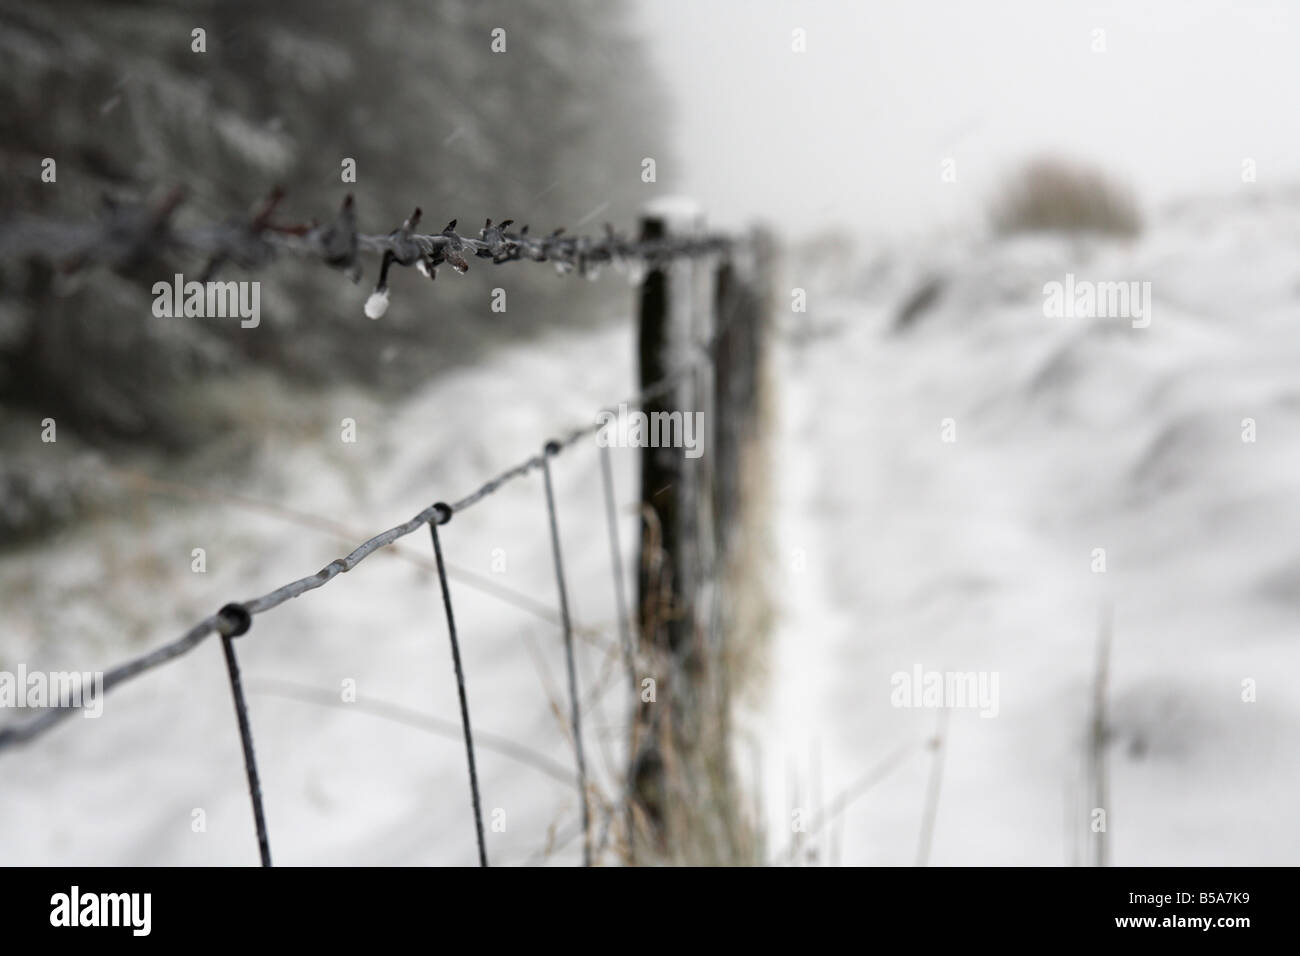 barbed wire fence coated in snow and ice on the edge of a forest county antrim northern ireland uk - Stock Image